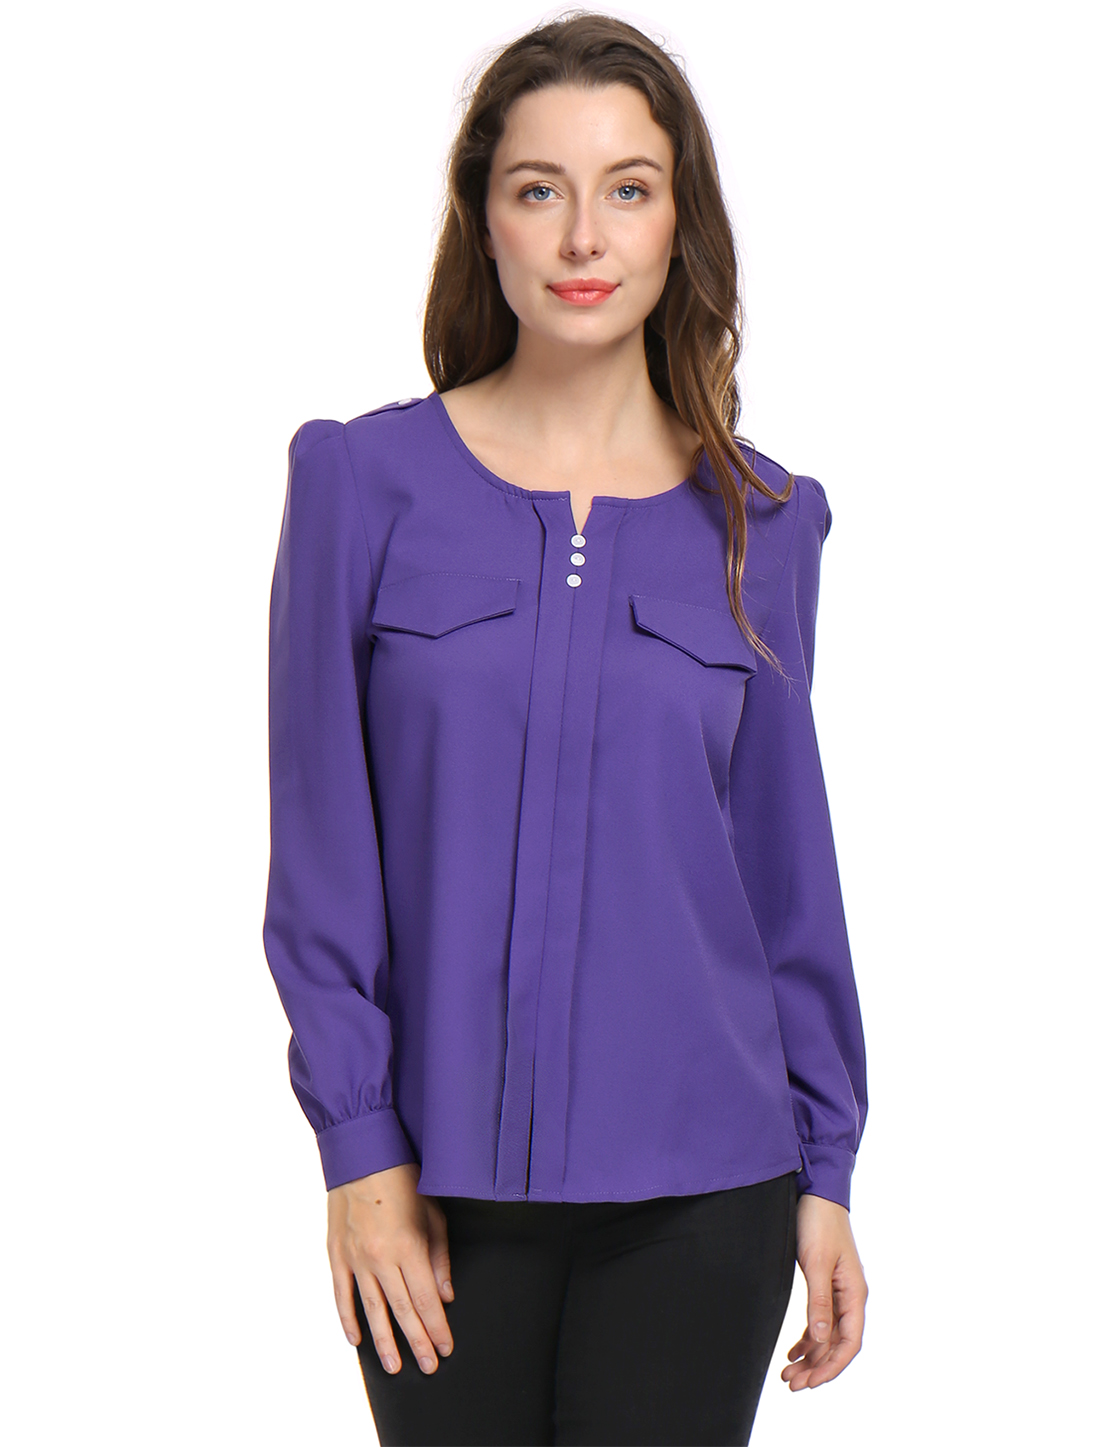 Women Buttons Decor Decorative Pockets Ruched Blouse Purple XL